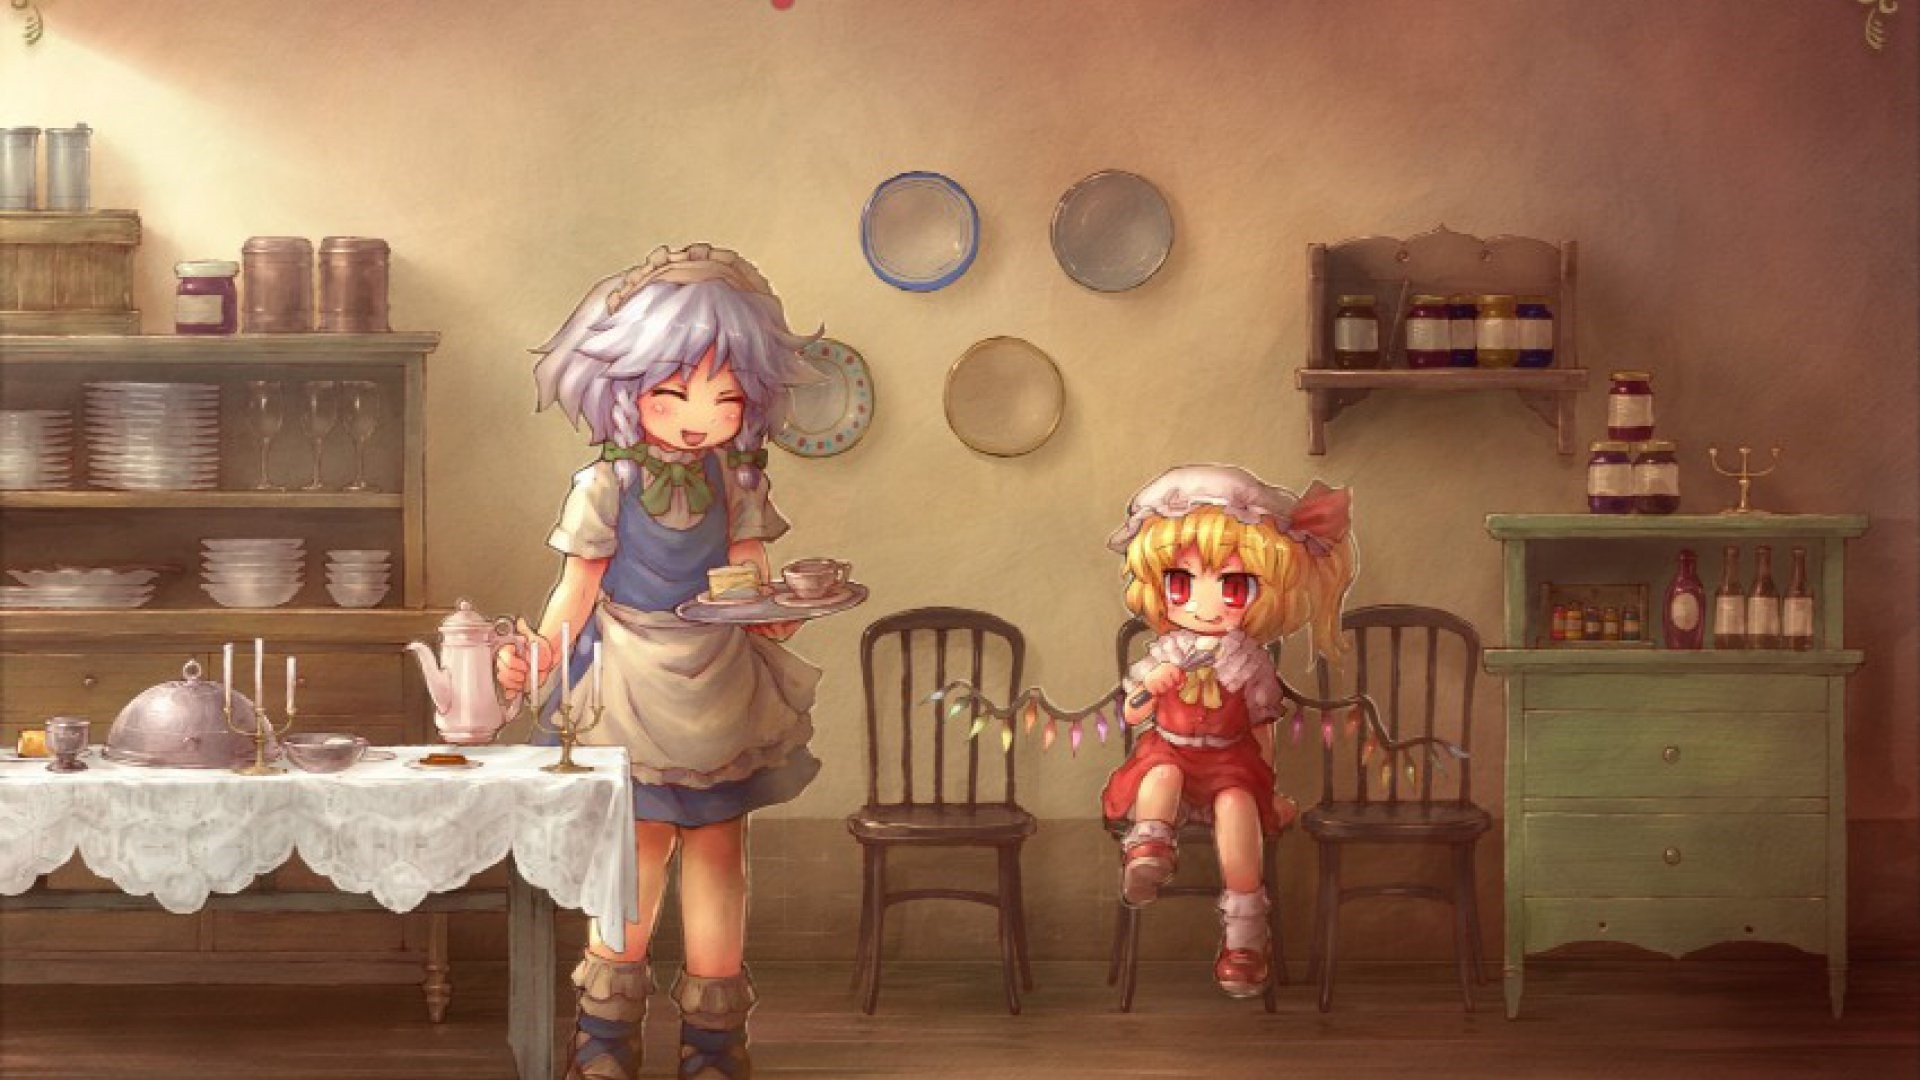 Anime Kitchen HD Wallpaper